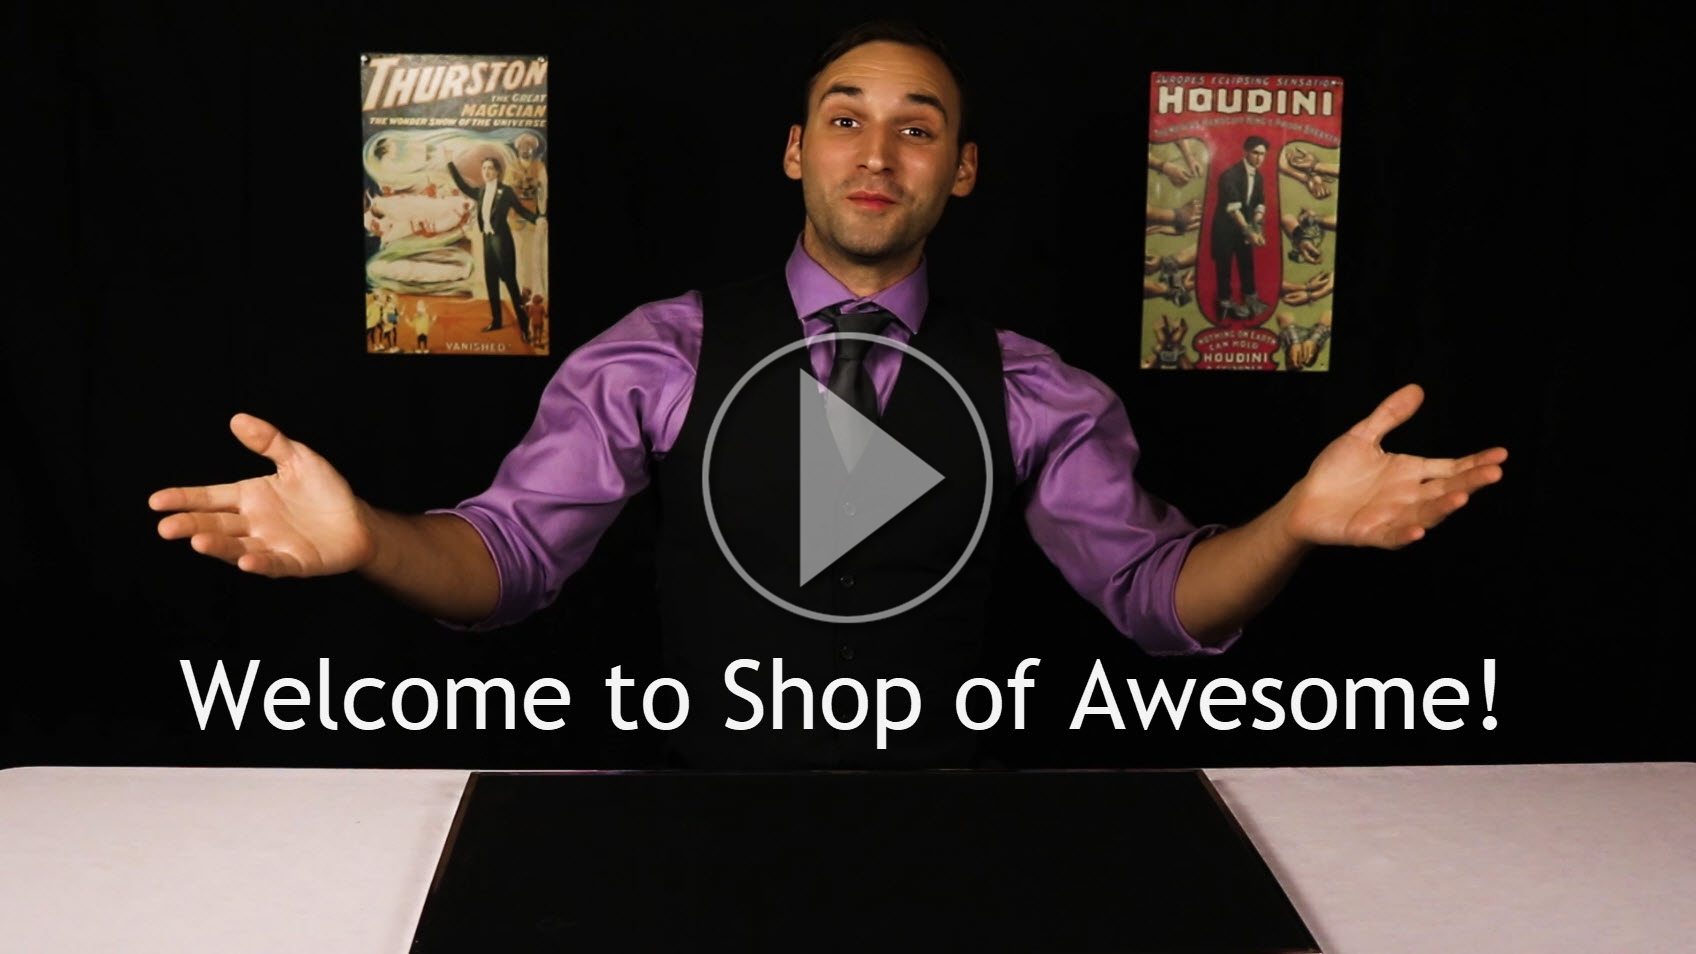 Shop of awesome Welcome Tile Home